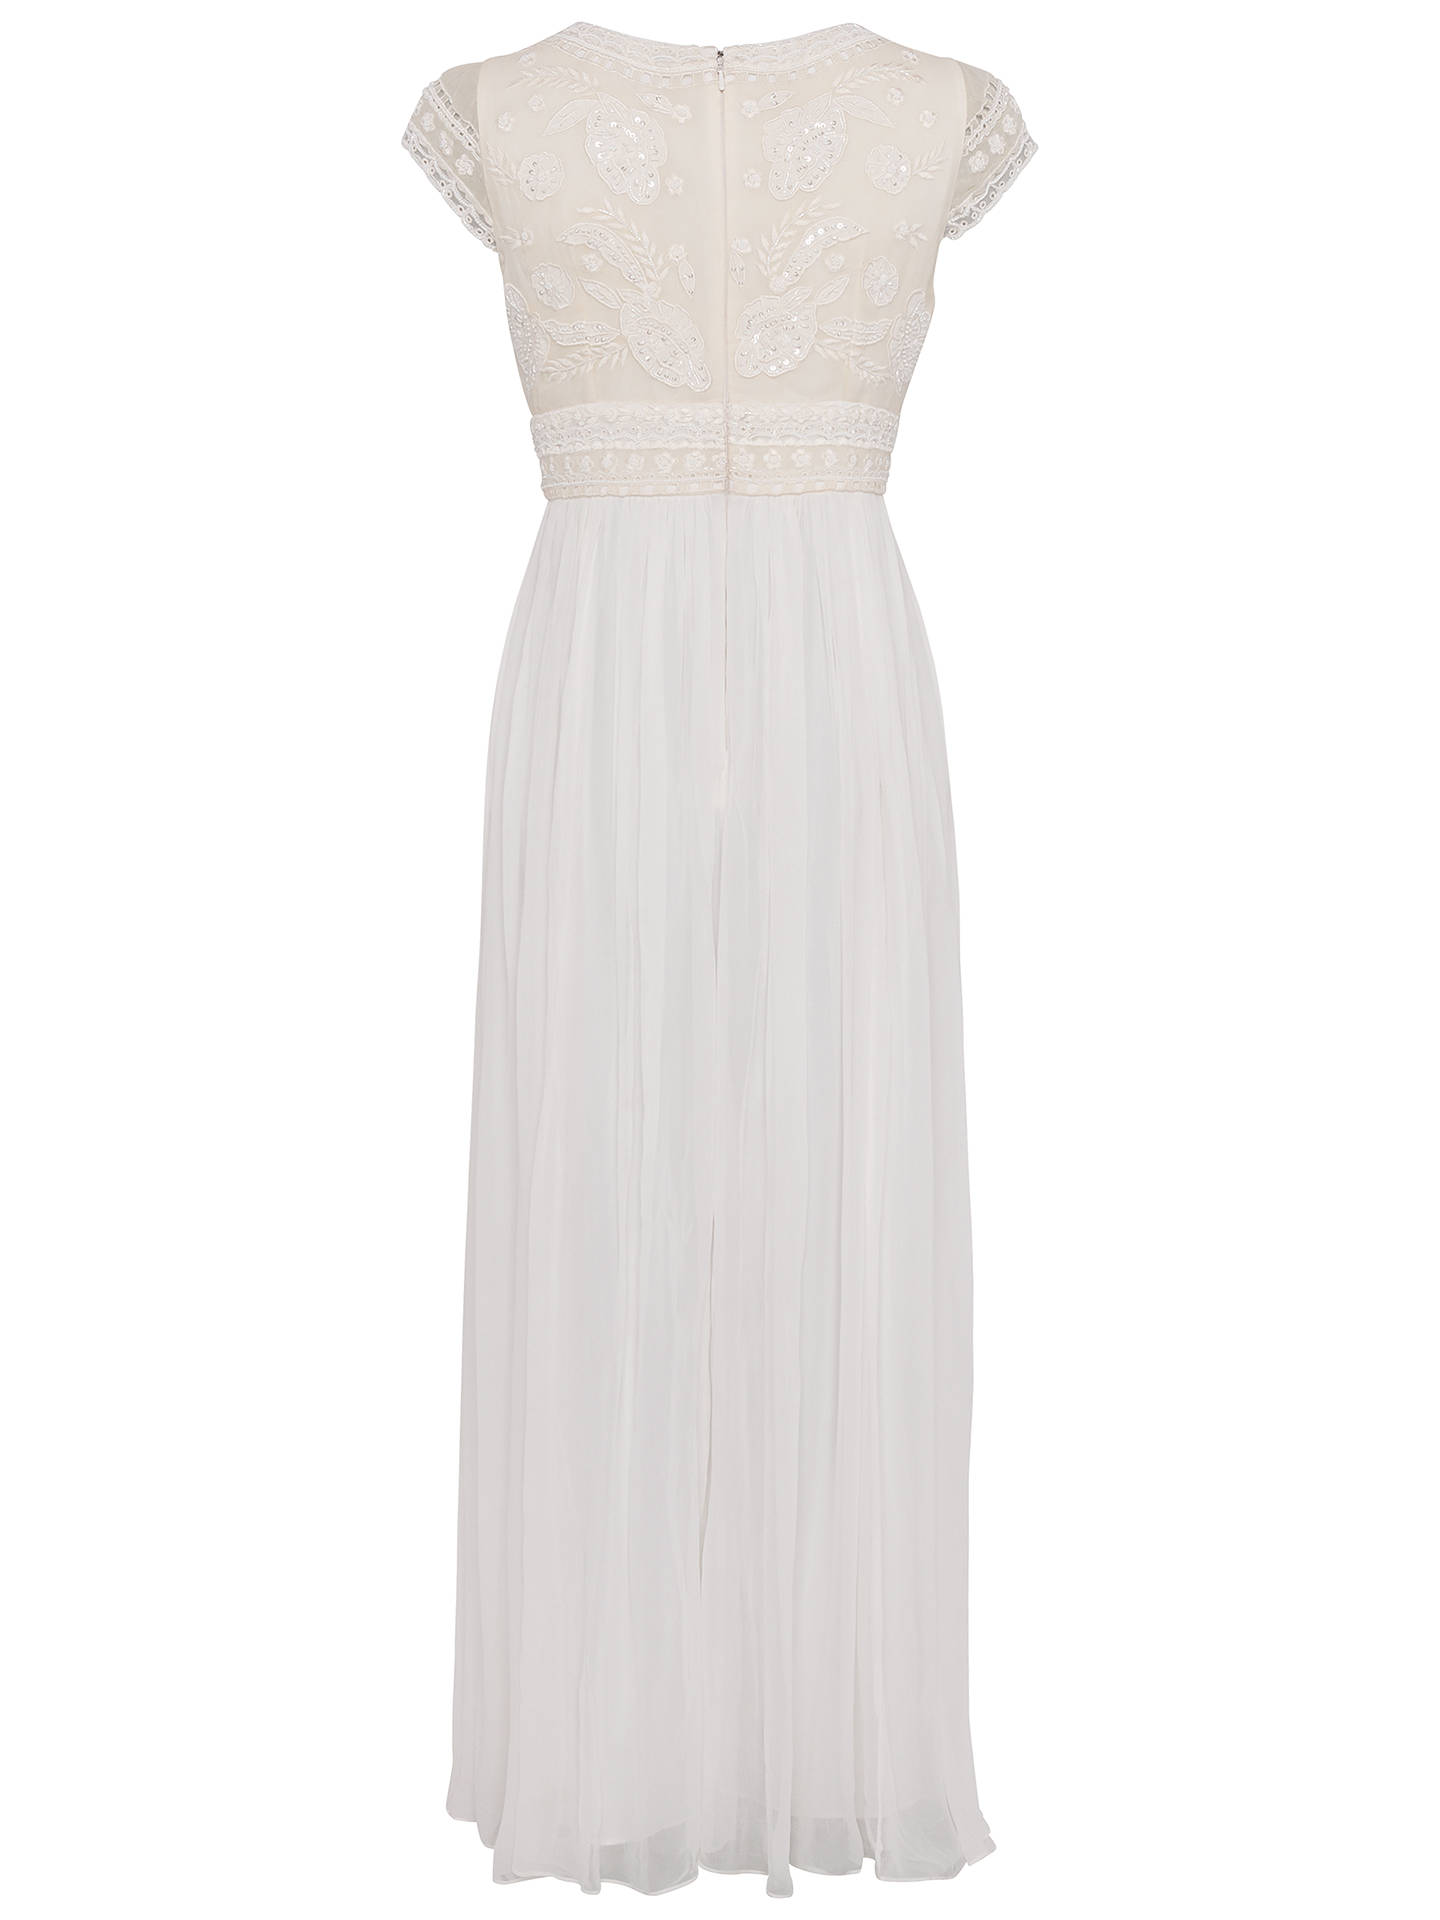 b6bd0a60baa3 Buy French Connection Palmero Embellished Wedding Dress, Summer White, 6  Online at johnlewis.